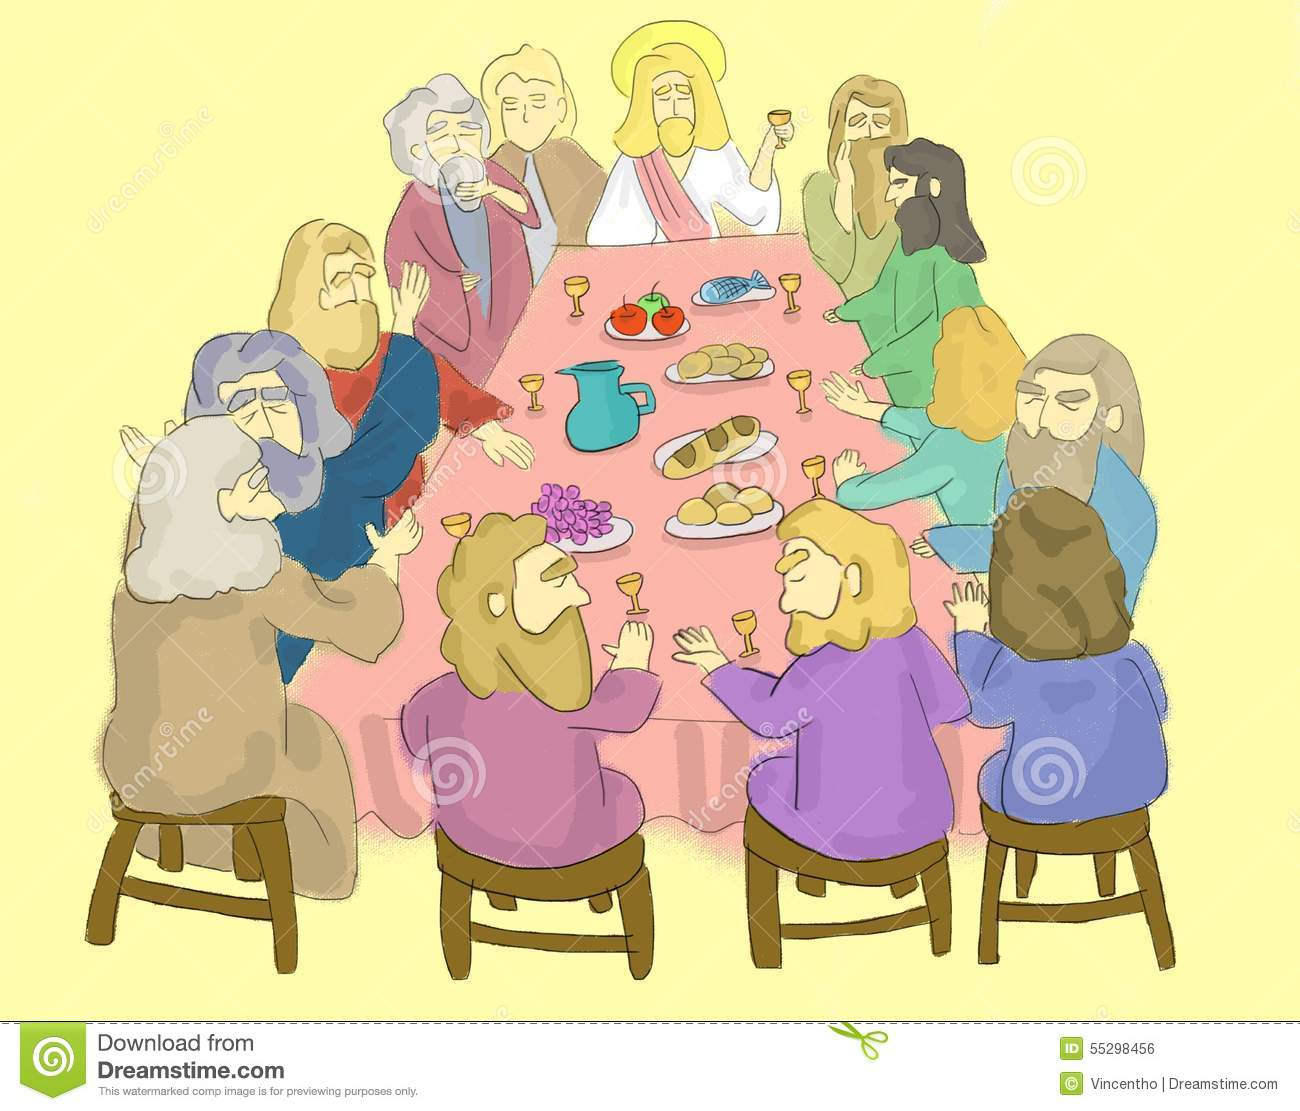 The Last Supper Illustration Stock Illustration - Image: 55298456